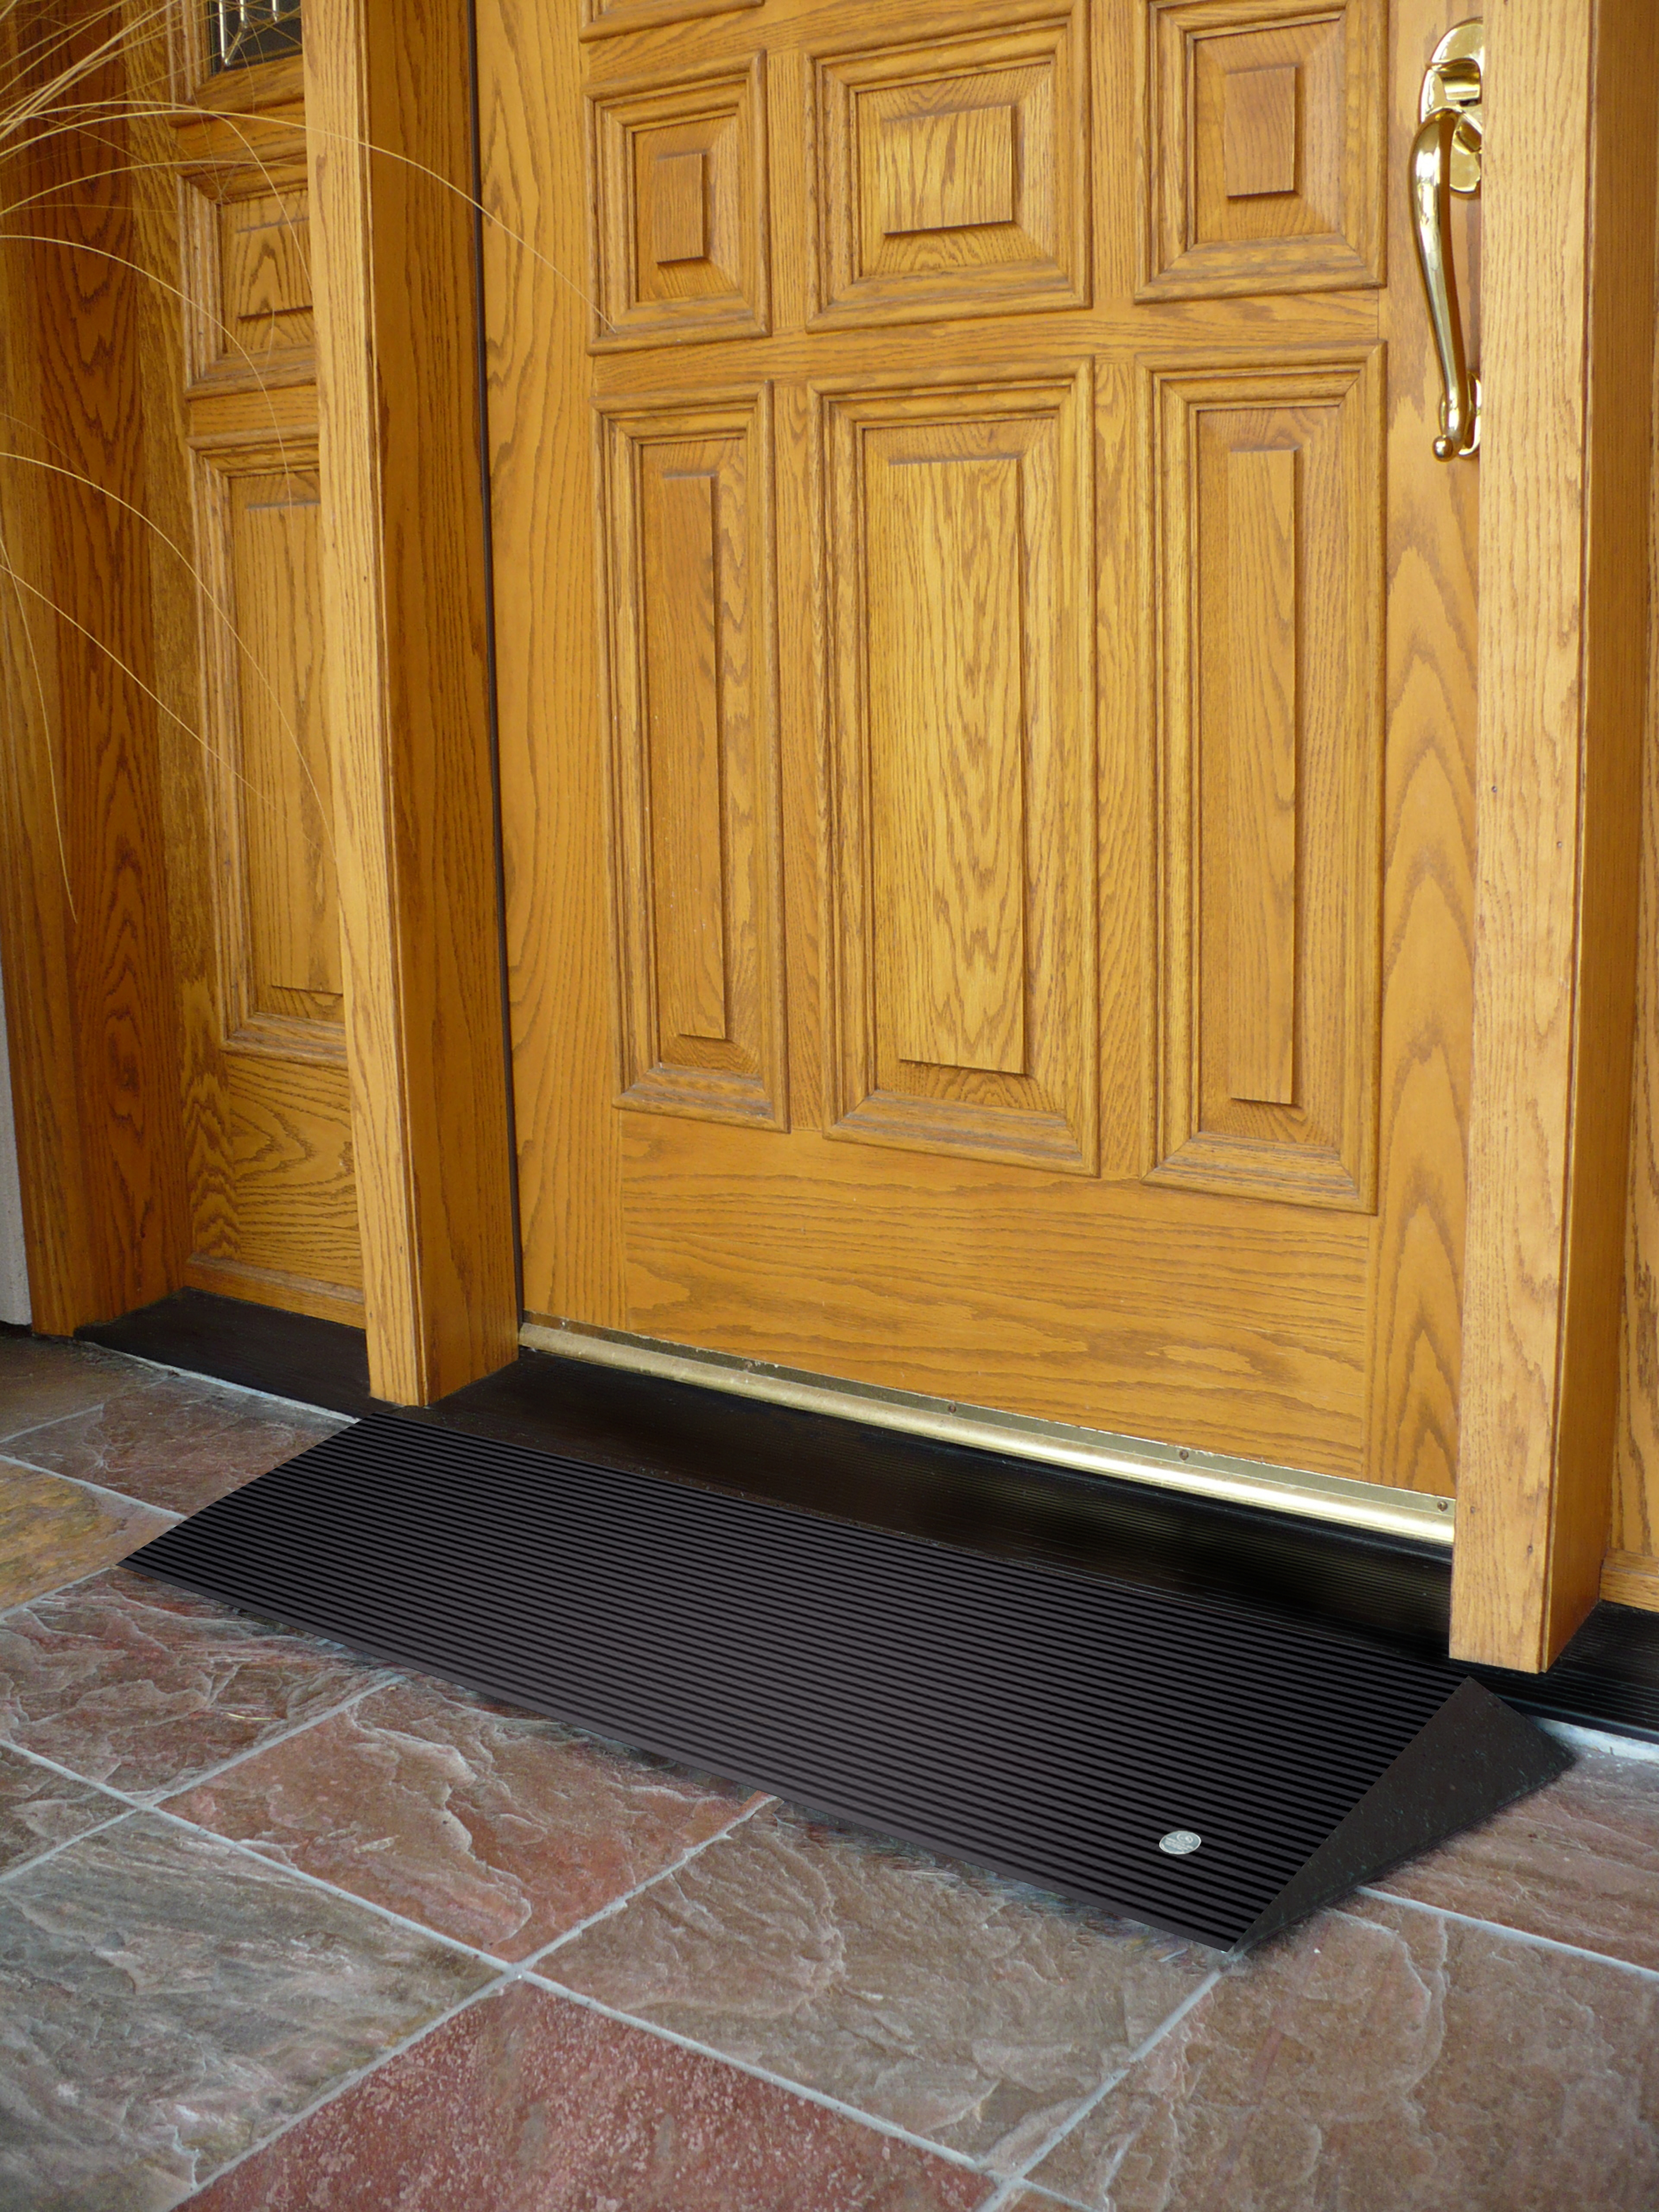 Zero Step Entry And Ez Access Threshold Ramps Wheelchair